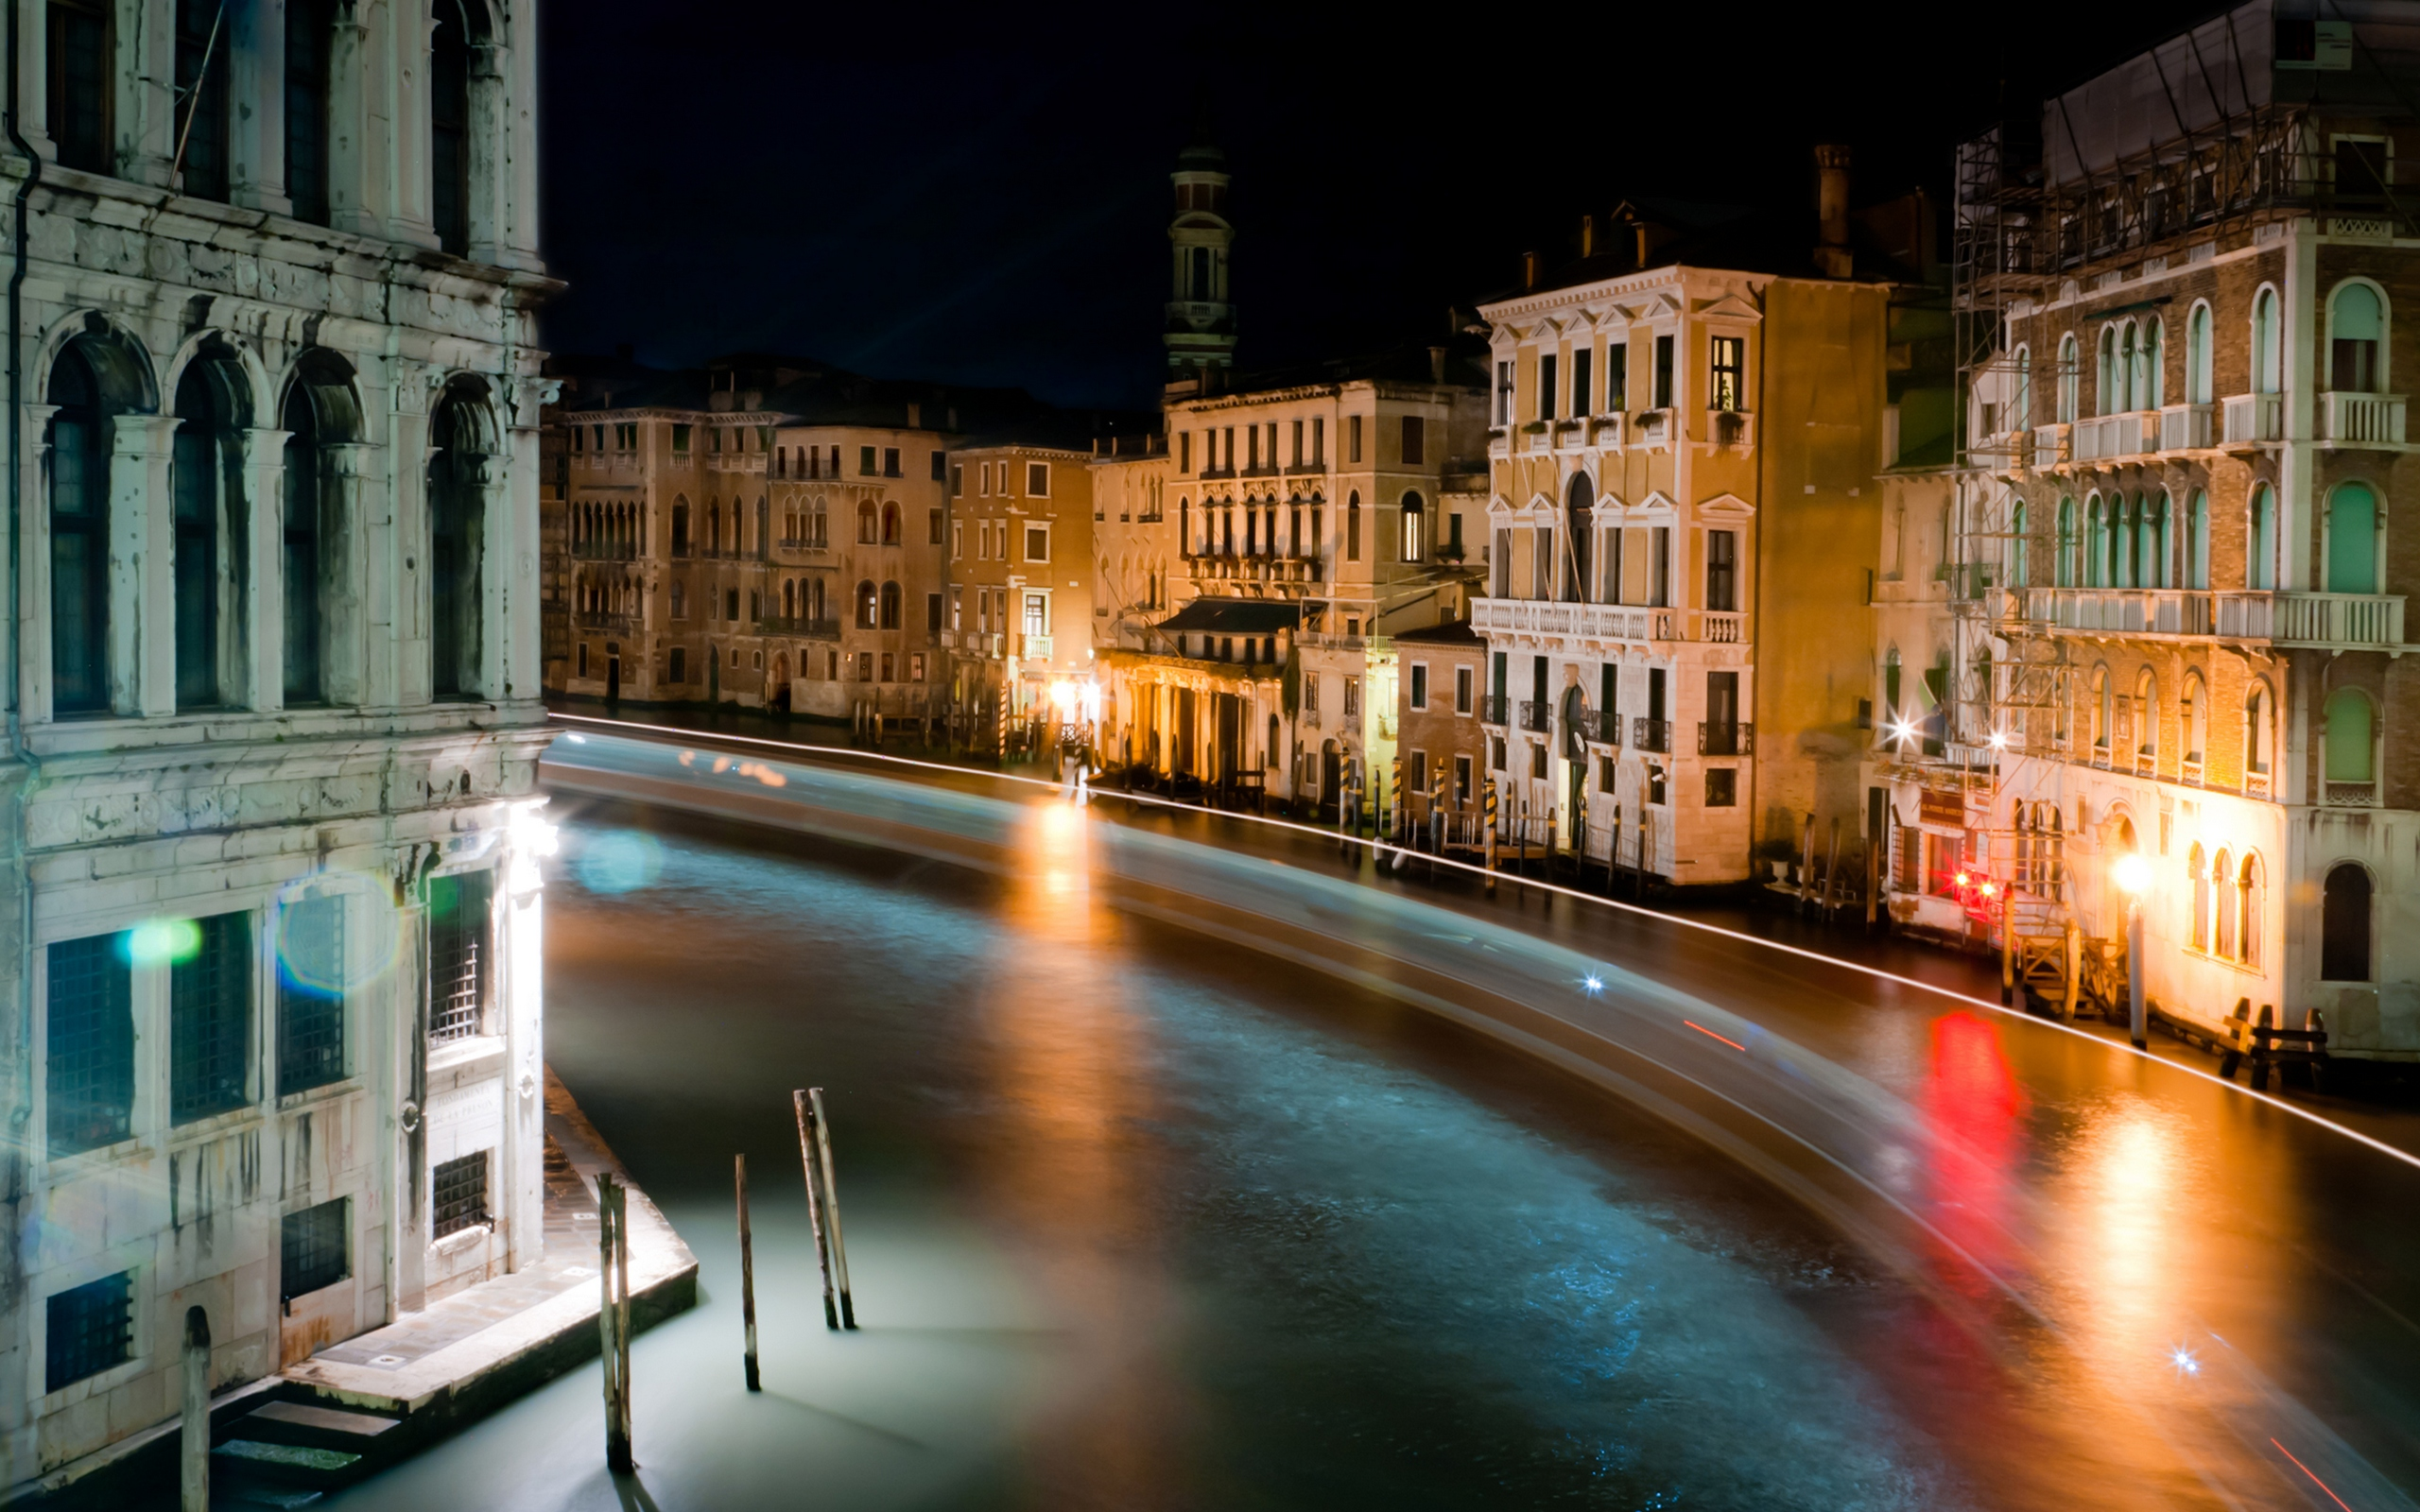 Architecture City Colors House Italy Night Hd 1498428 Wallpaper wallpaper